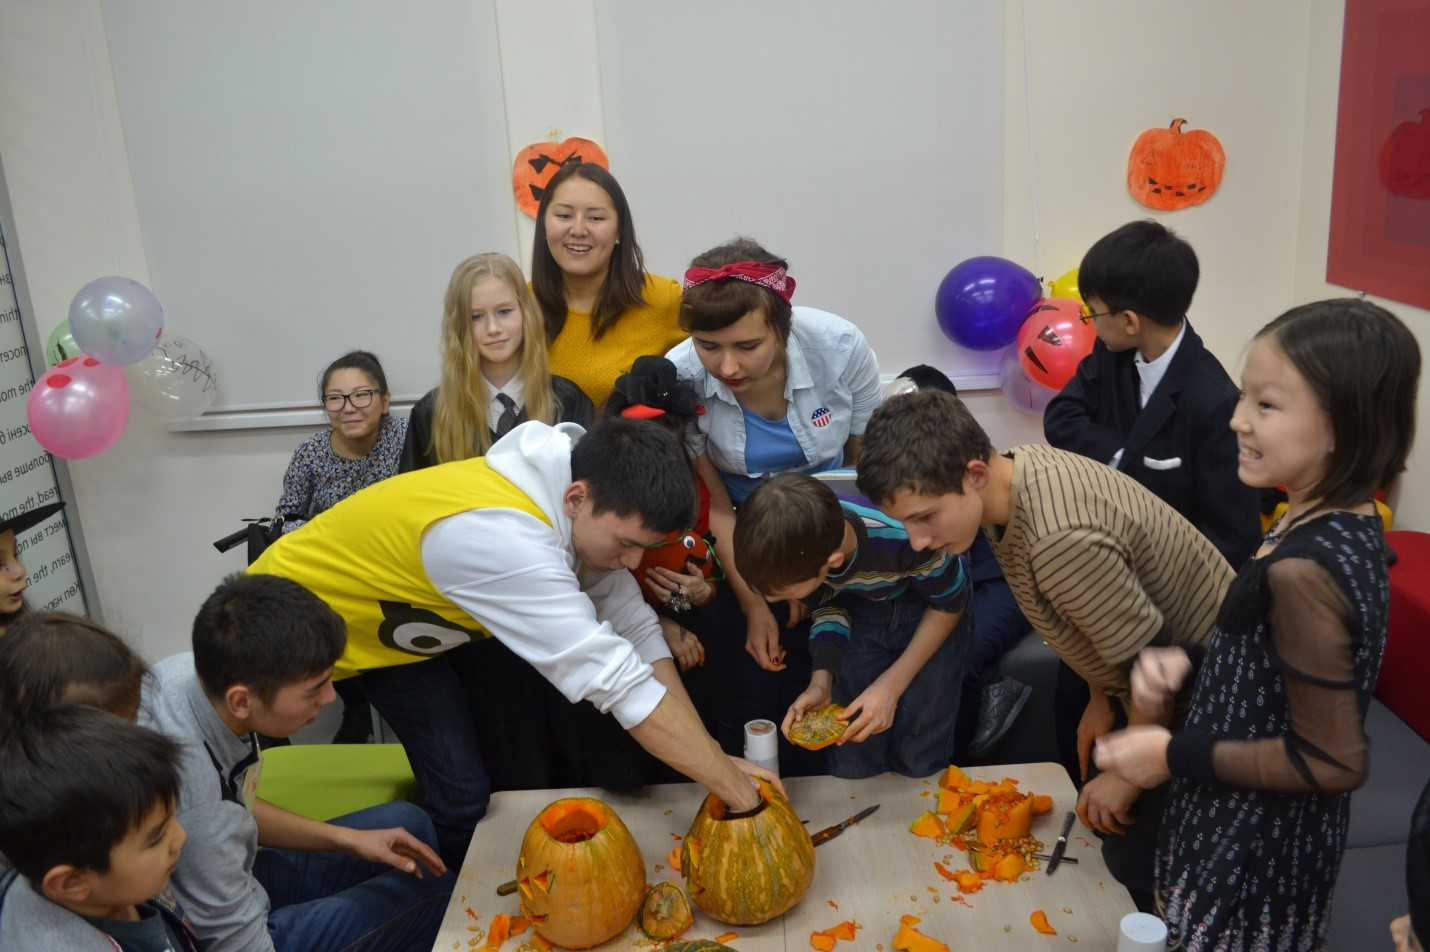 Ruslan helping children carve pumpkins during a Halloween celebration with fellow FLEX alumni.